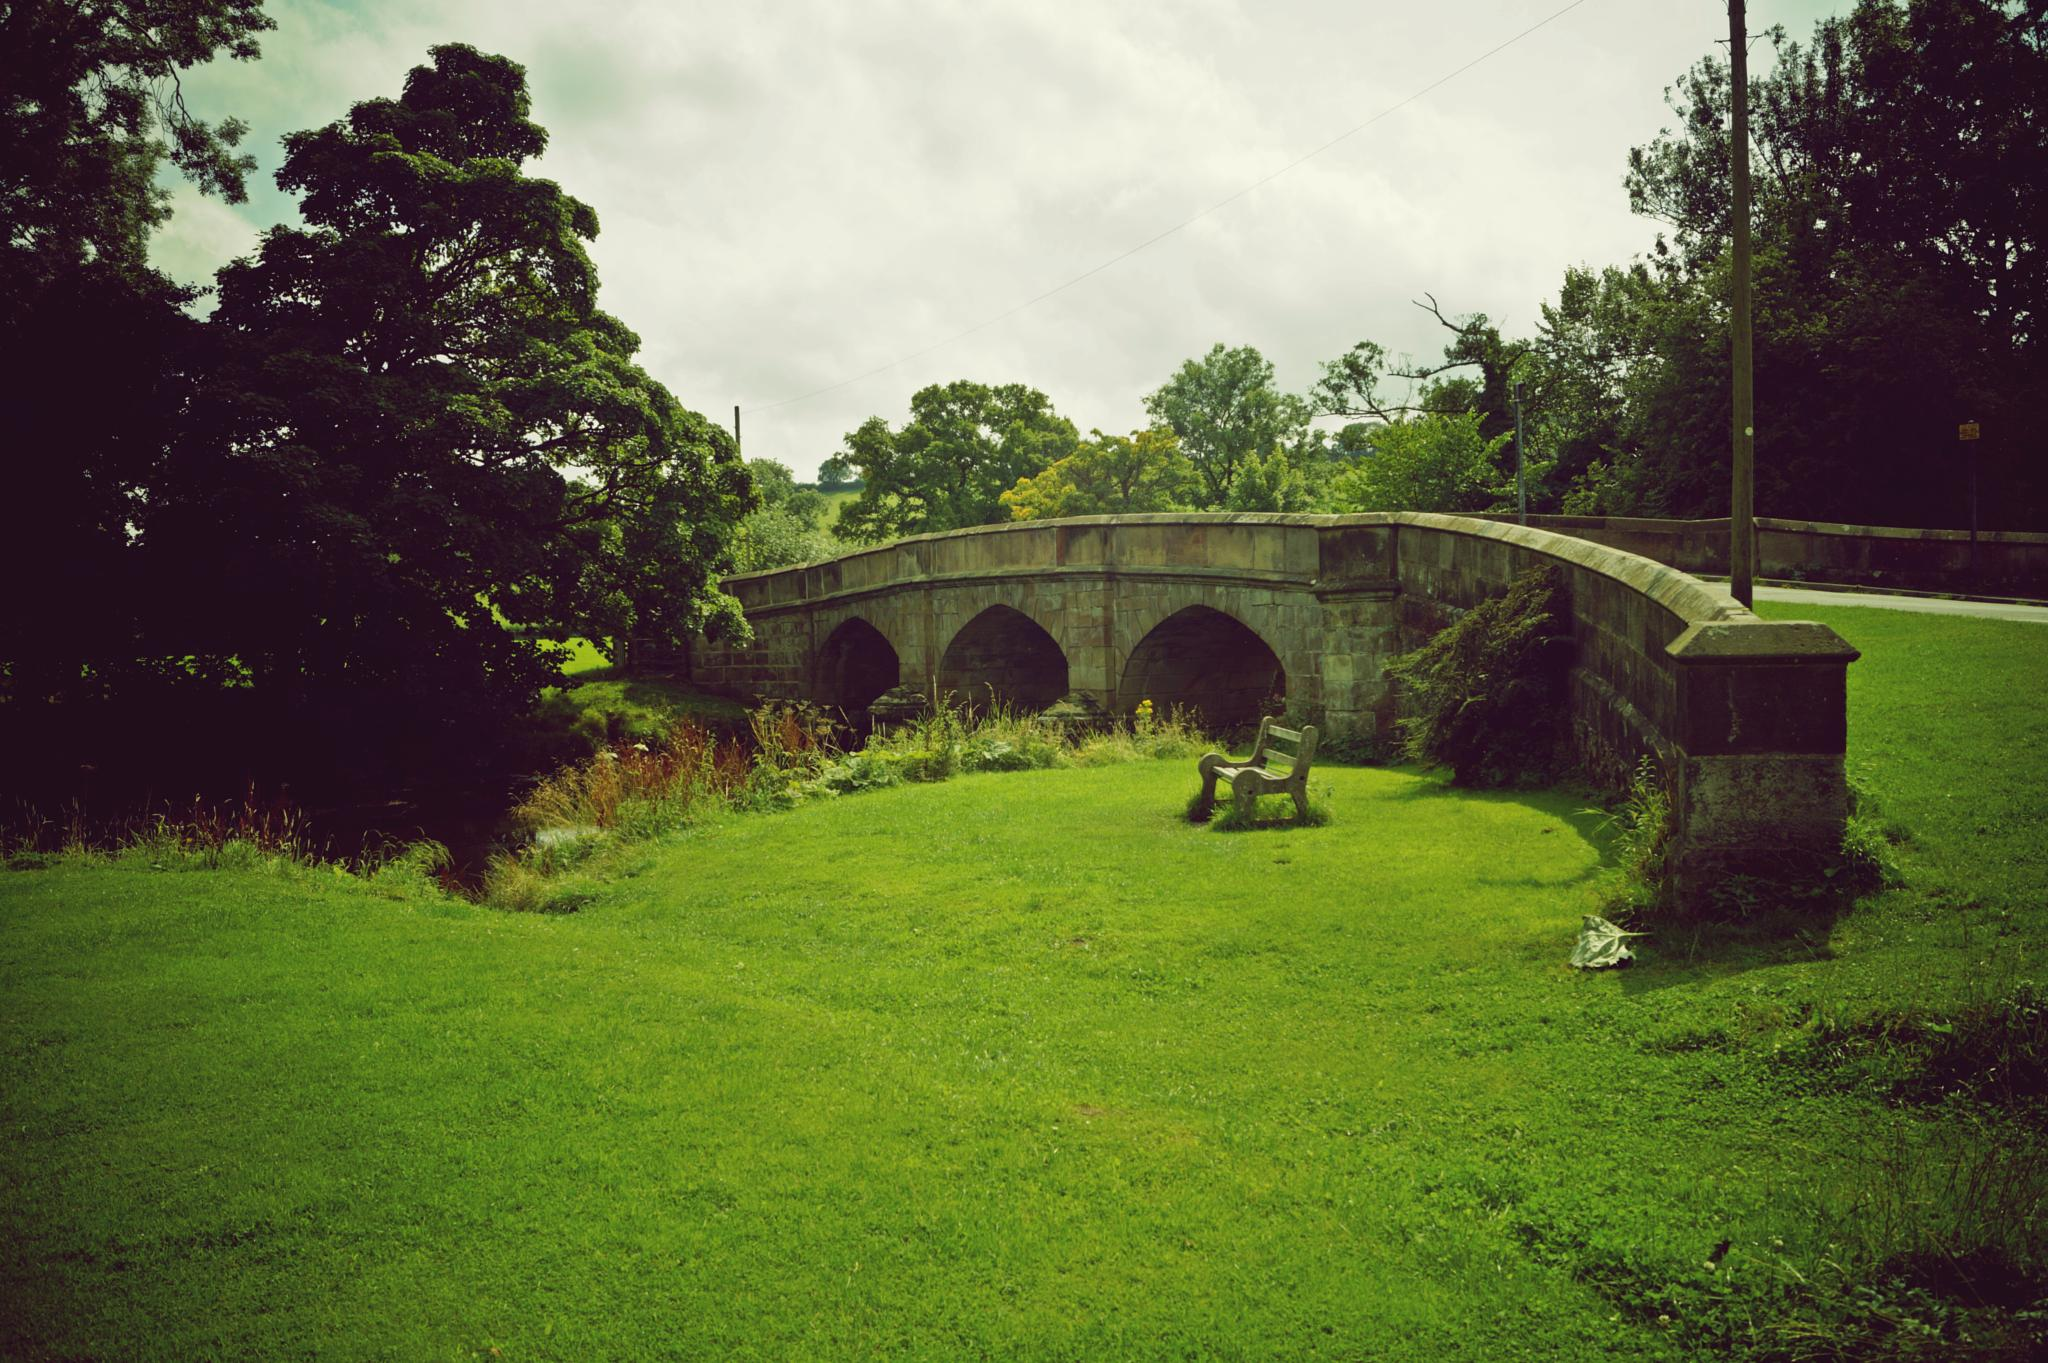 The bridge at Ilam by imurfin